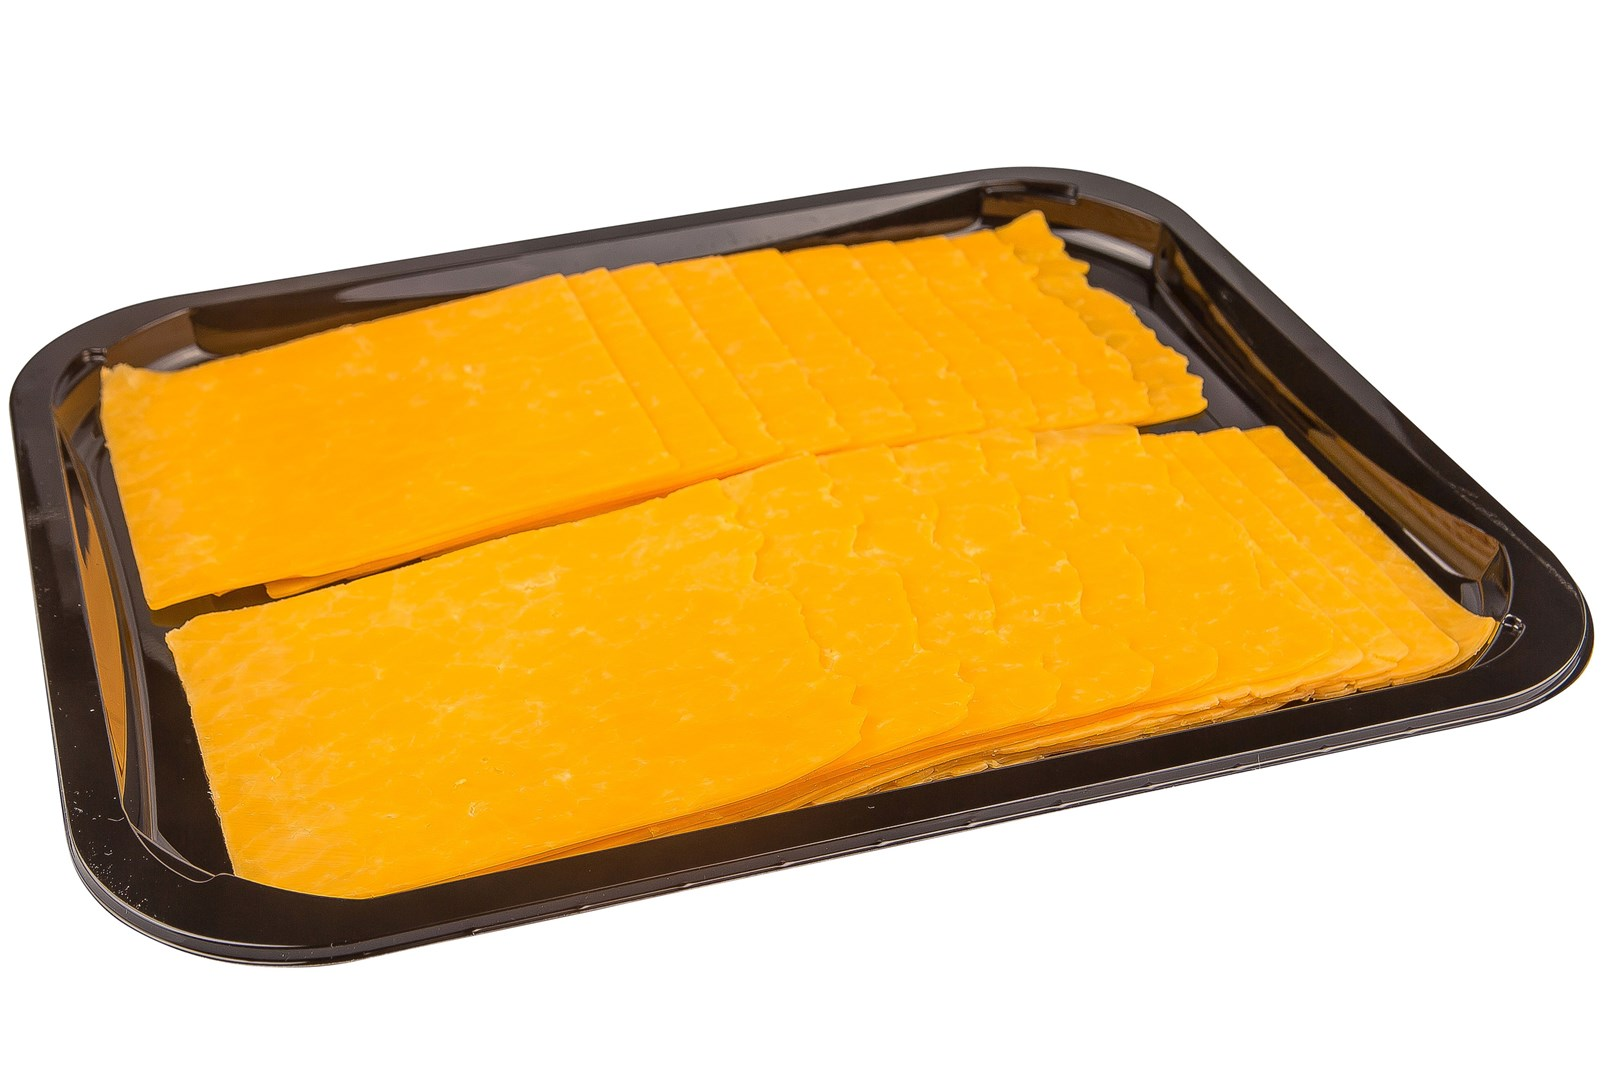 Productafbeelding Cheddar palet 2x10pl